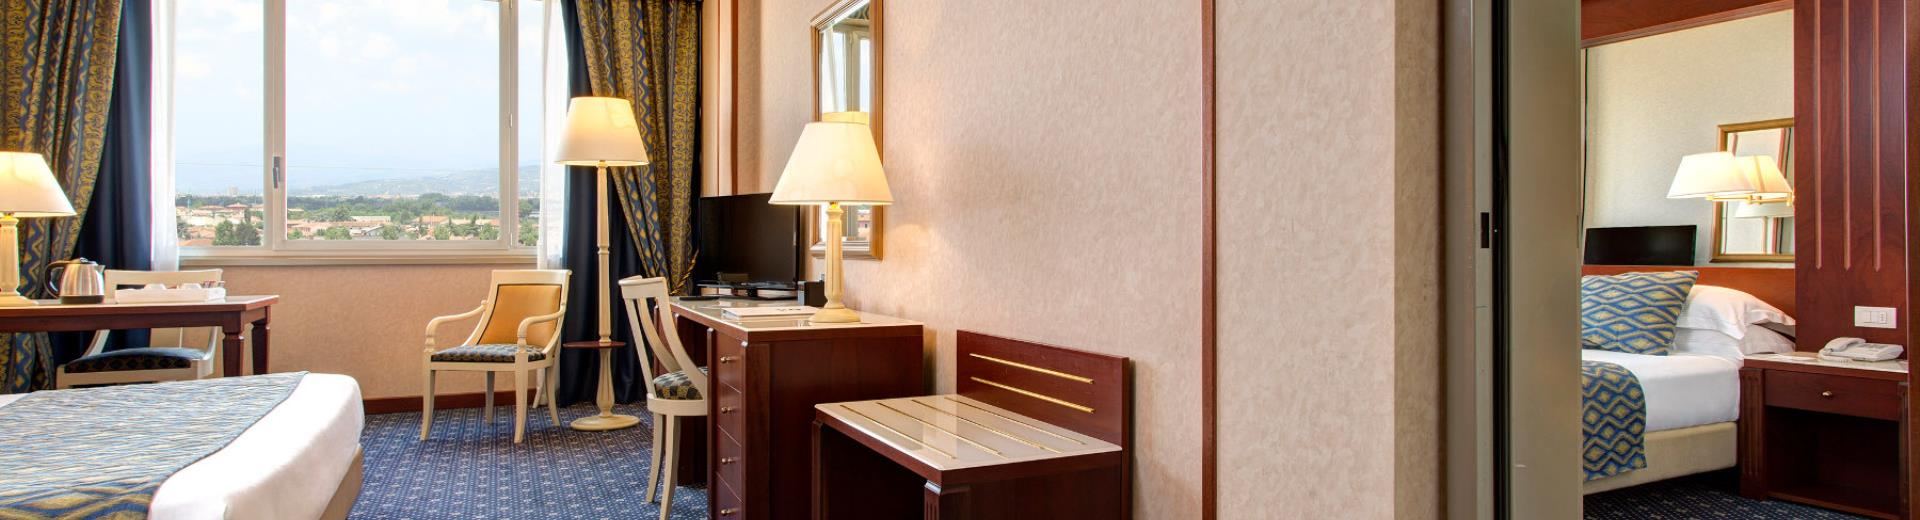 Family Room Connecting - CTC Hotel Verona